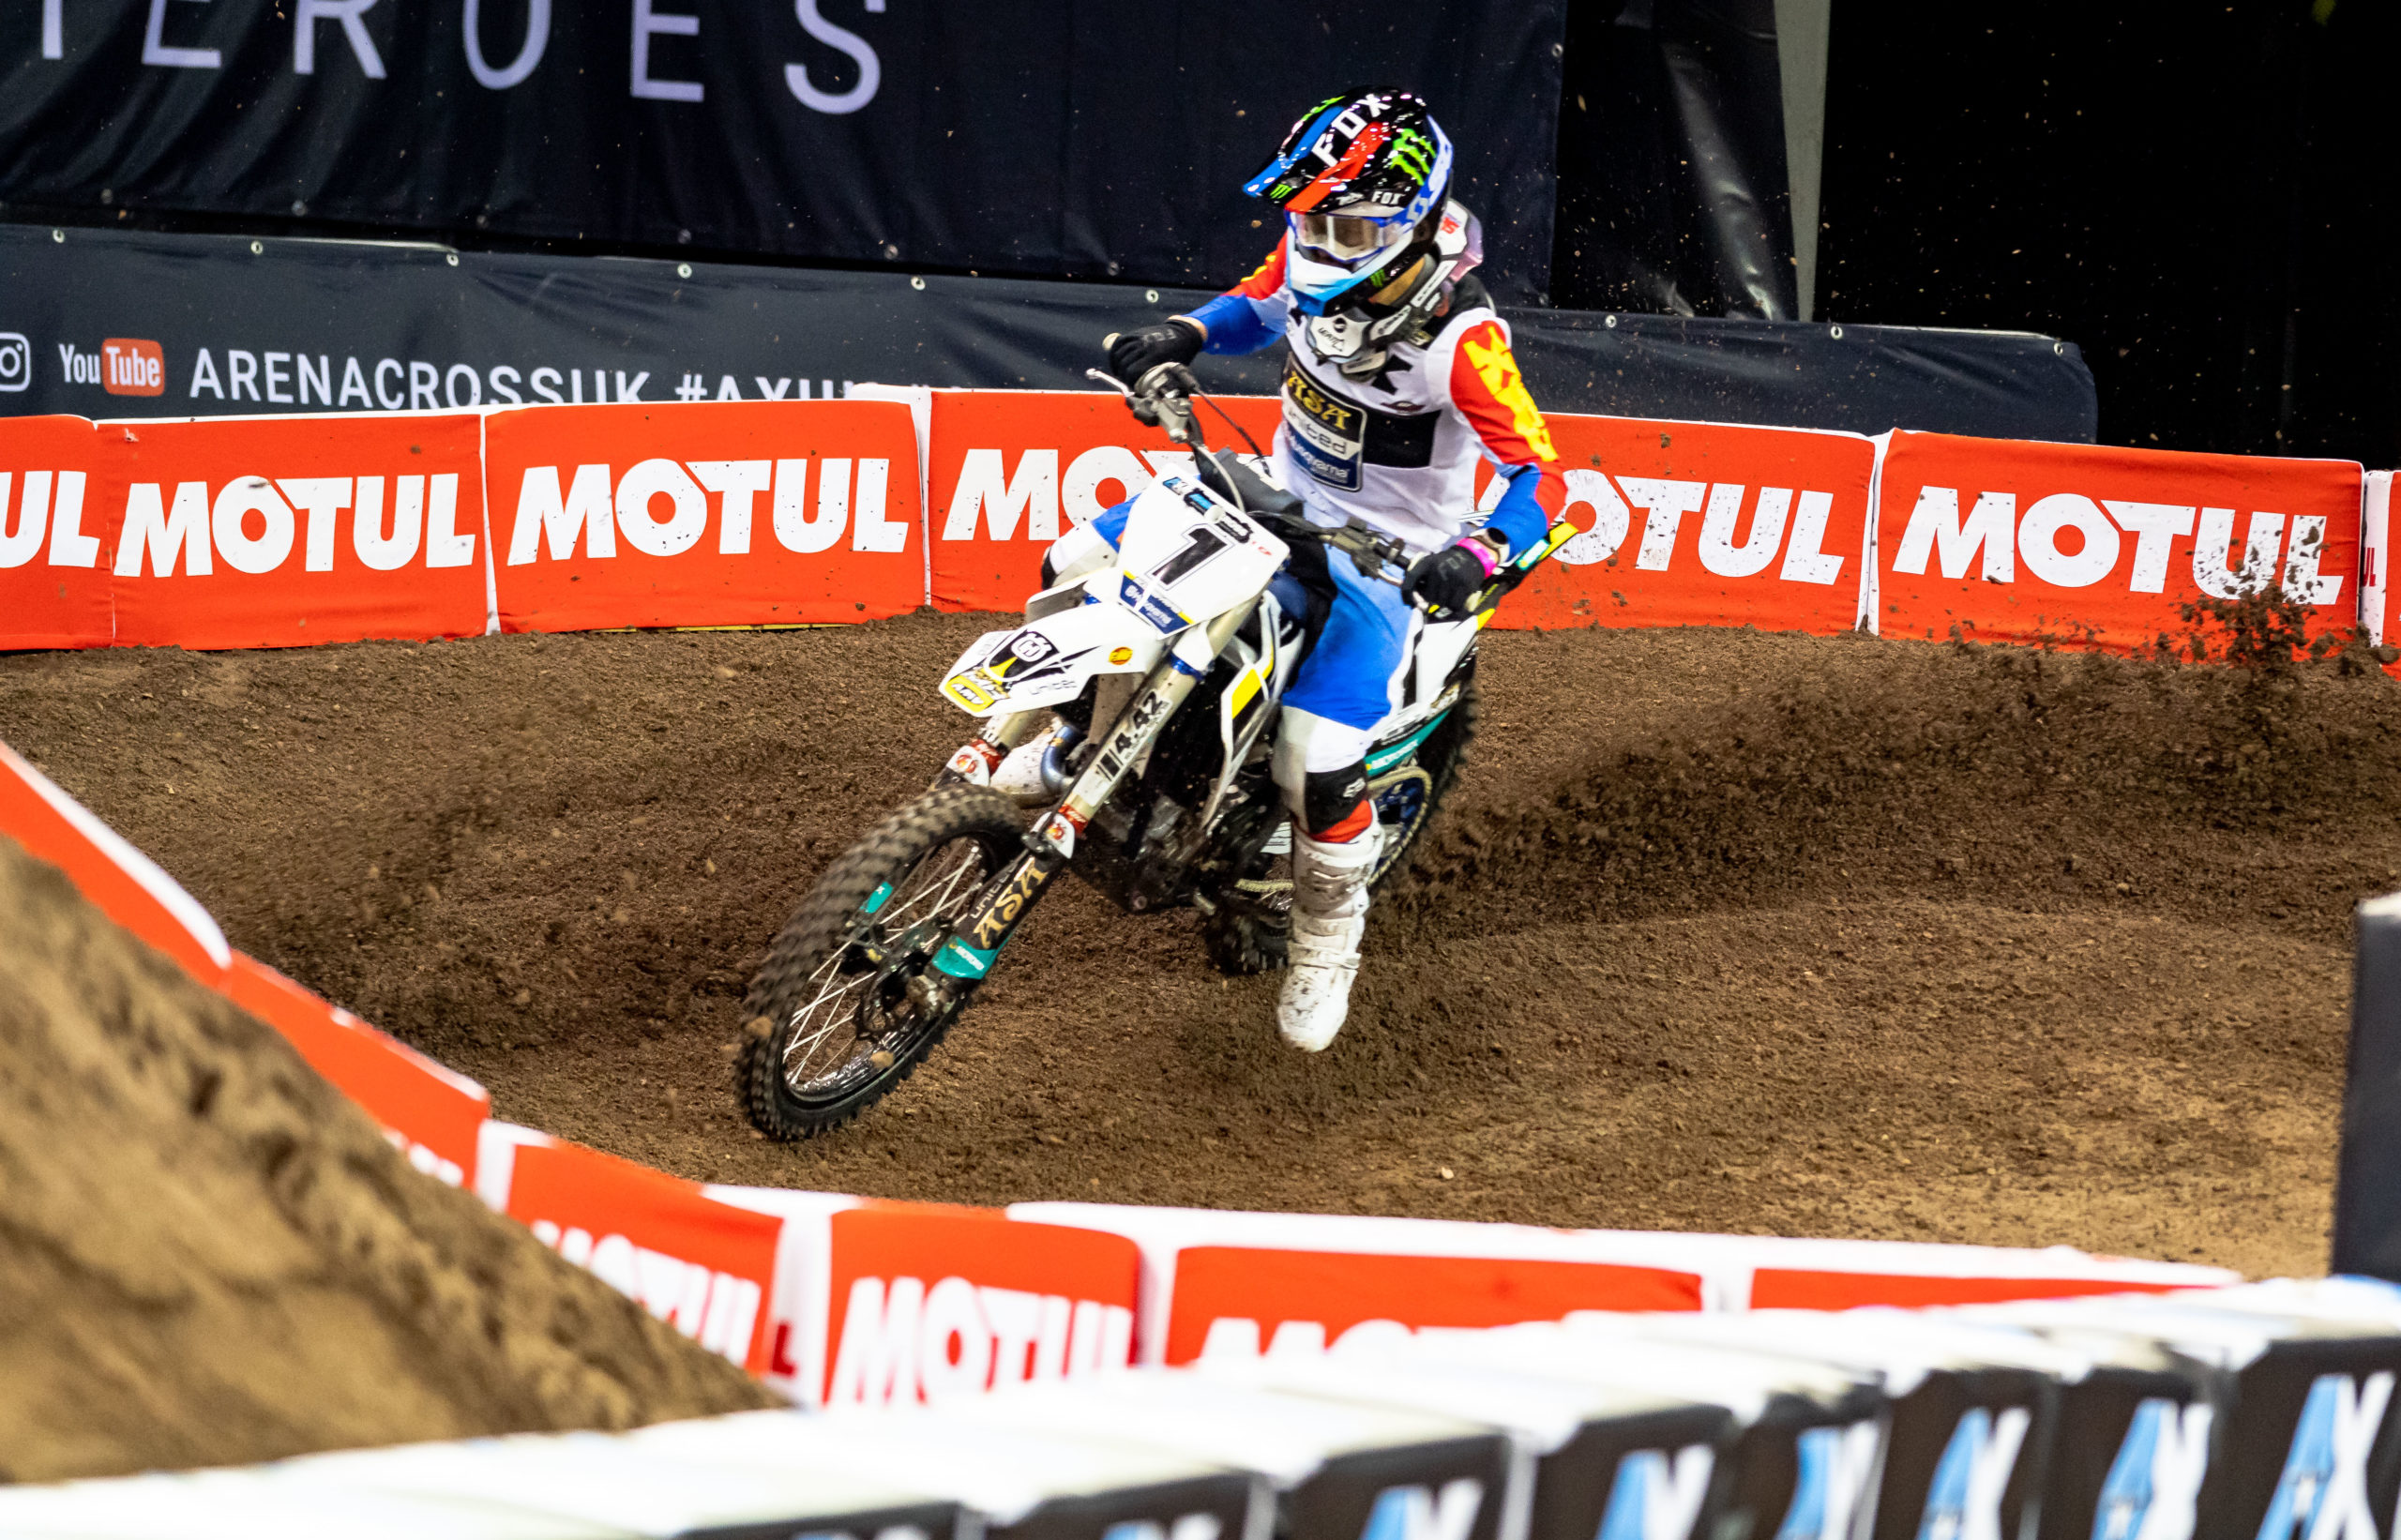 Motul joins Arenacross for the third year!